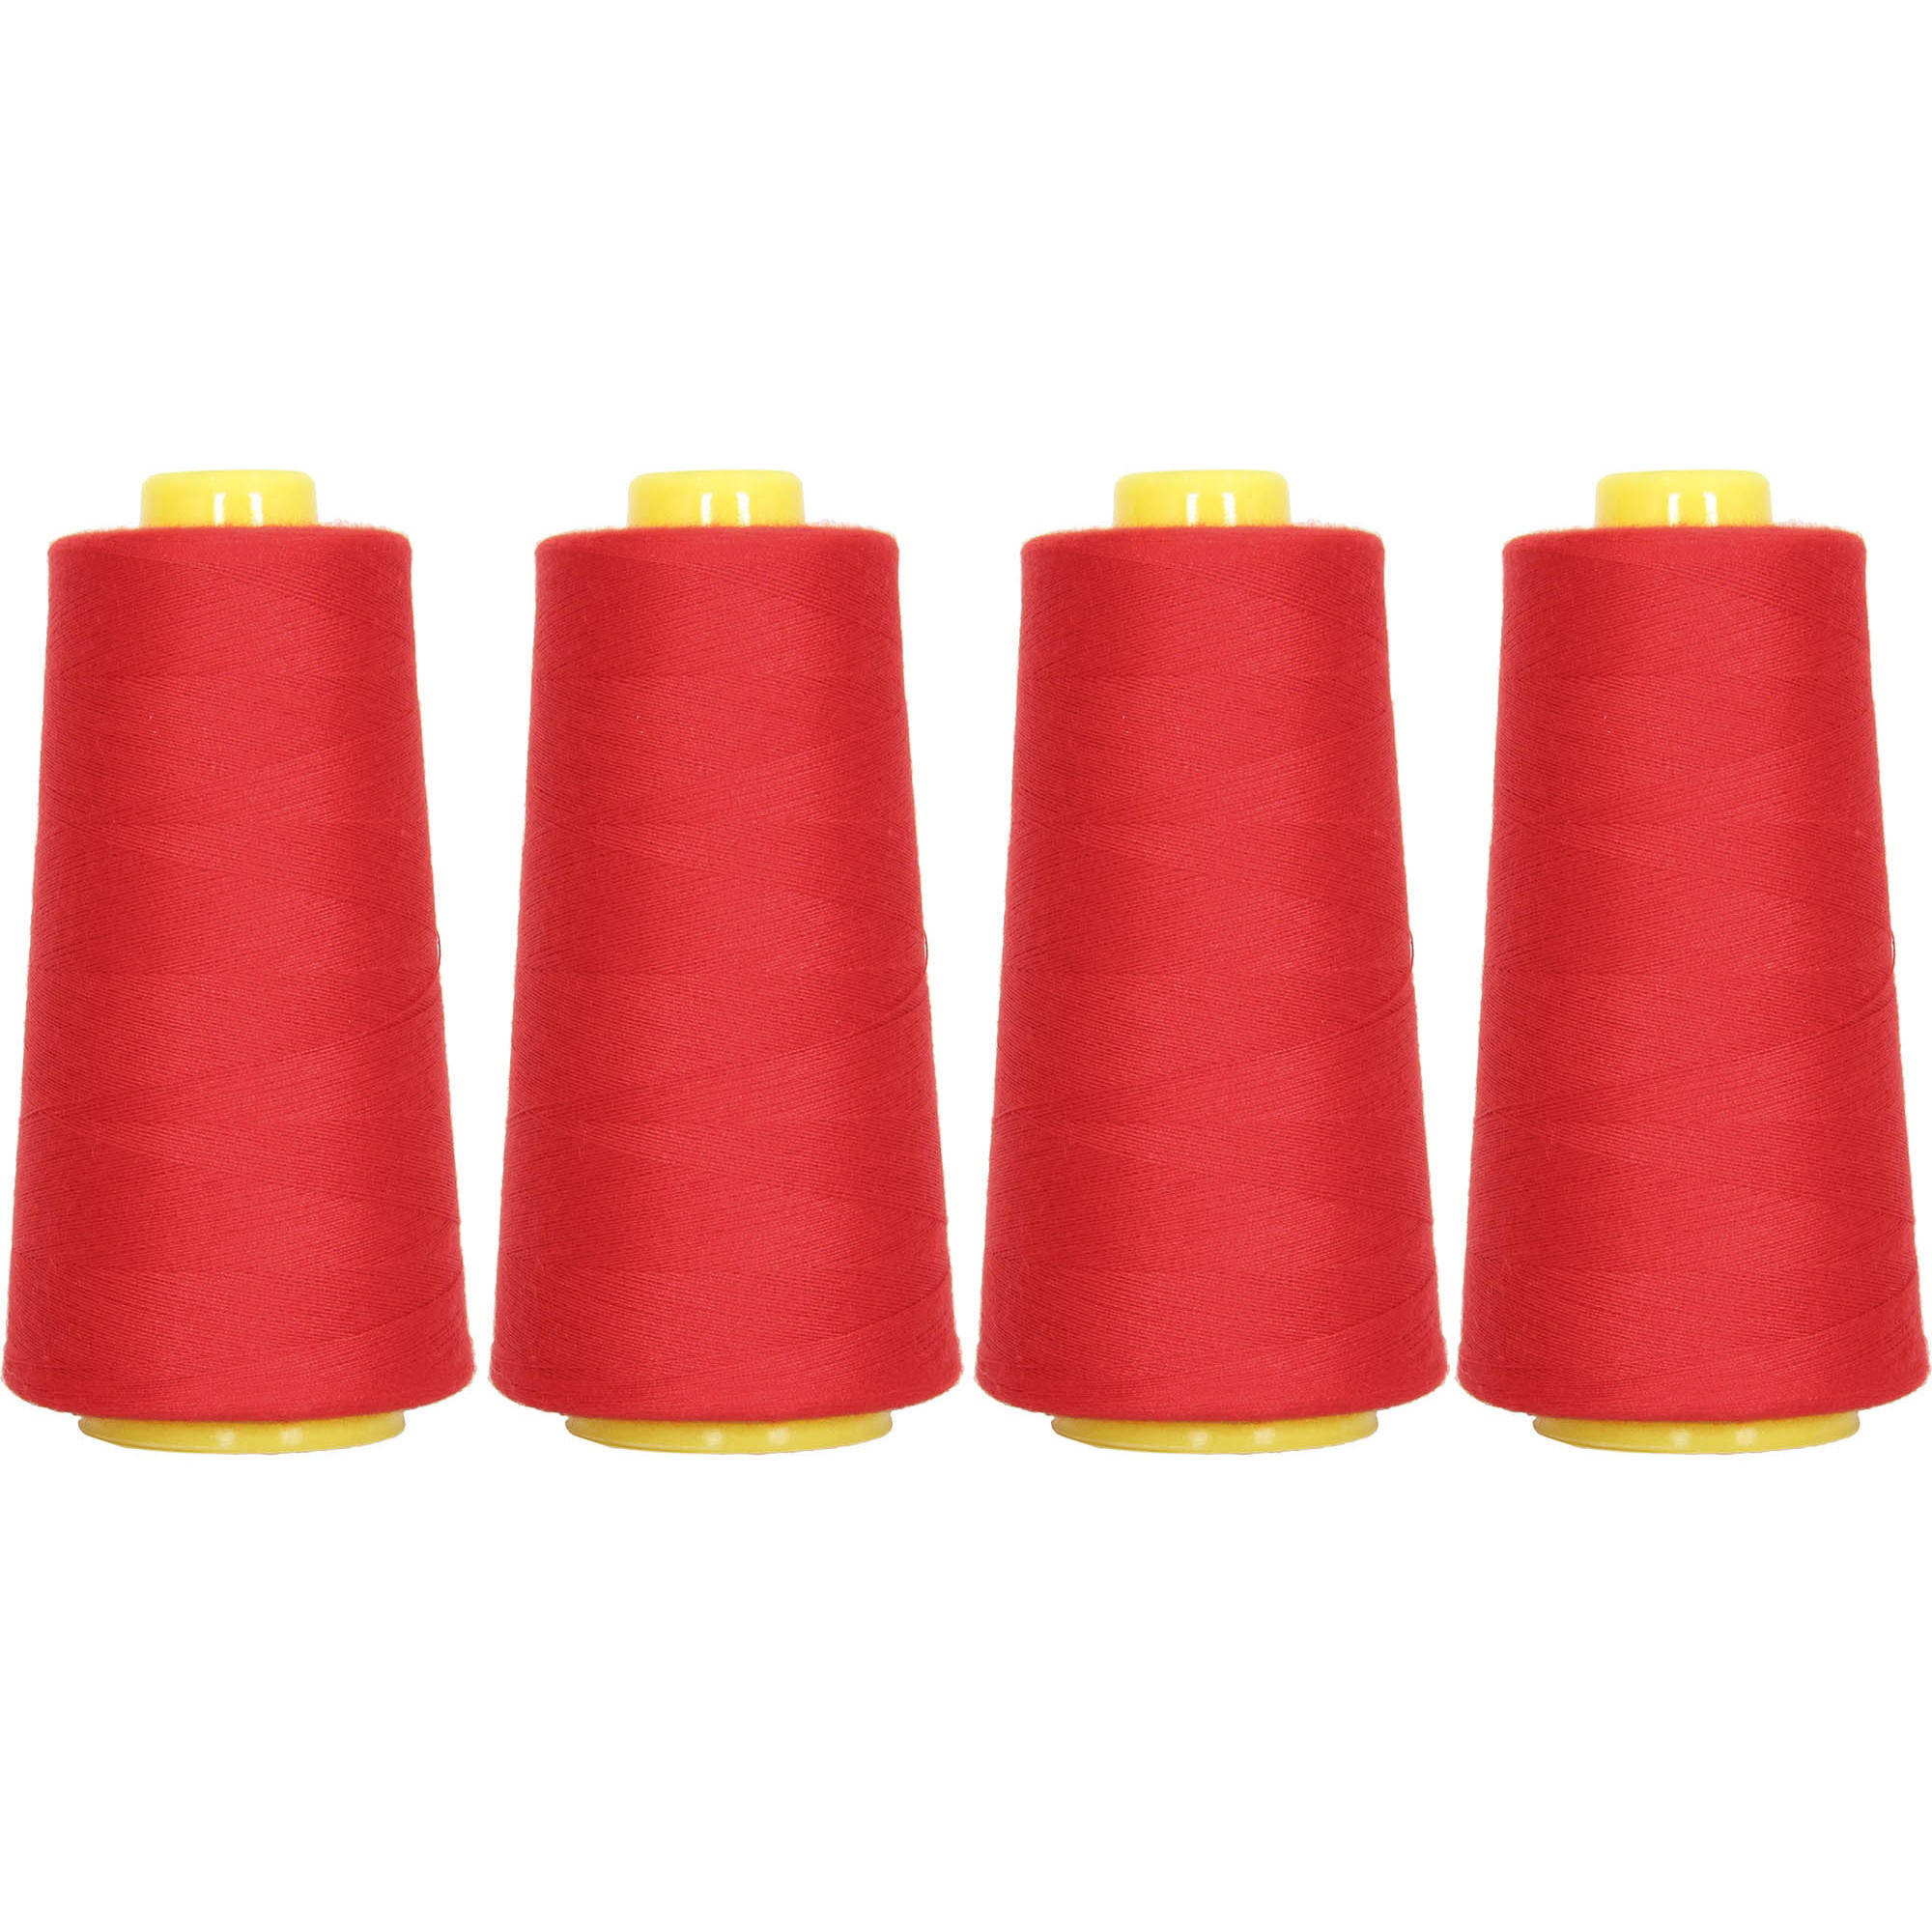 4 Cones Red Serger Sewing Thread, 2750 Yd Cones, TEX 27 40S/2, Threadart